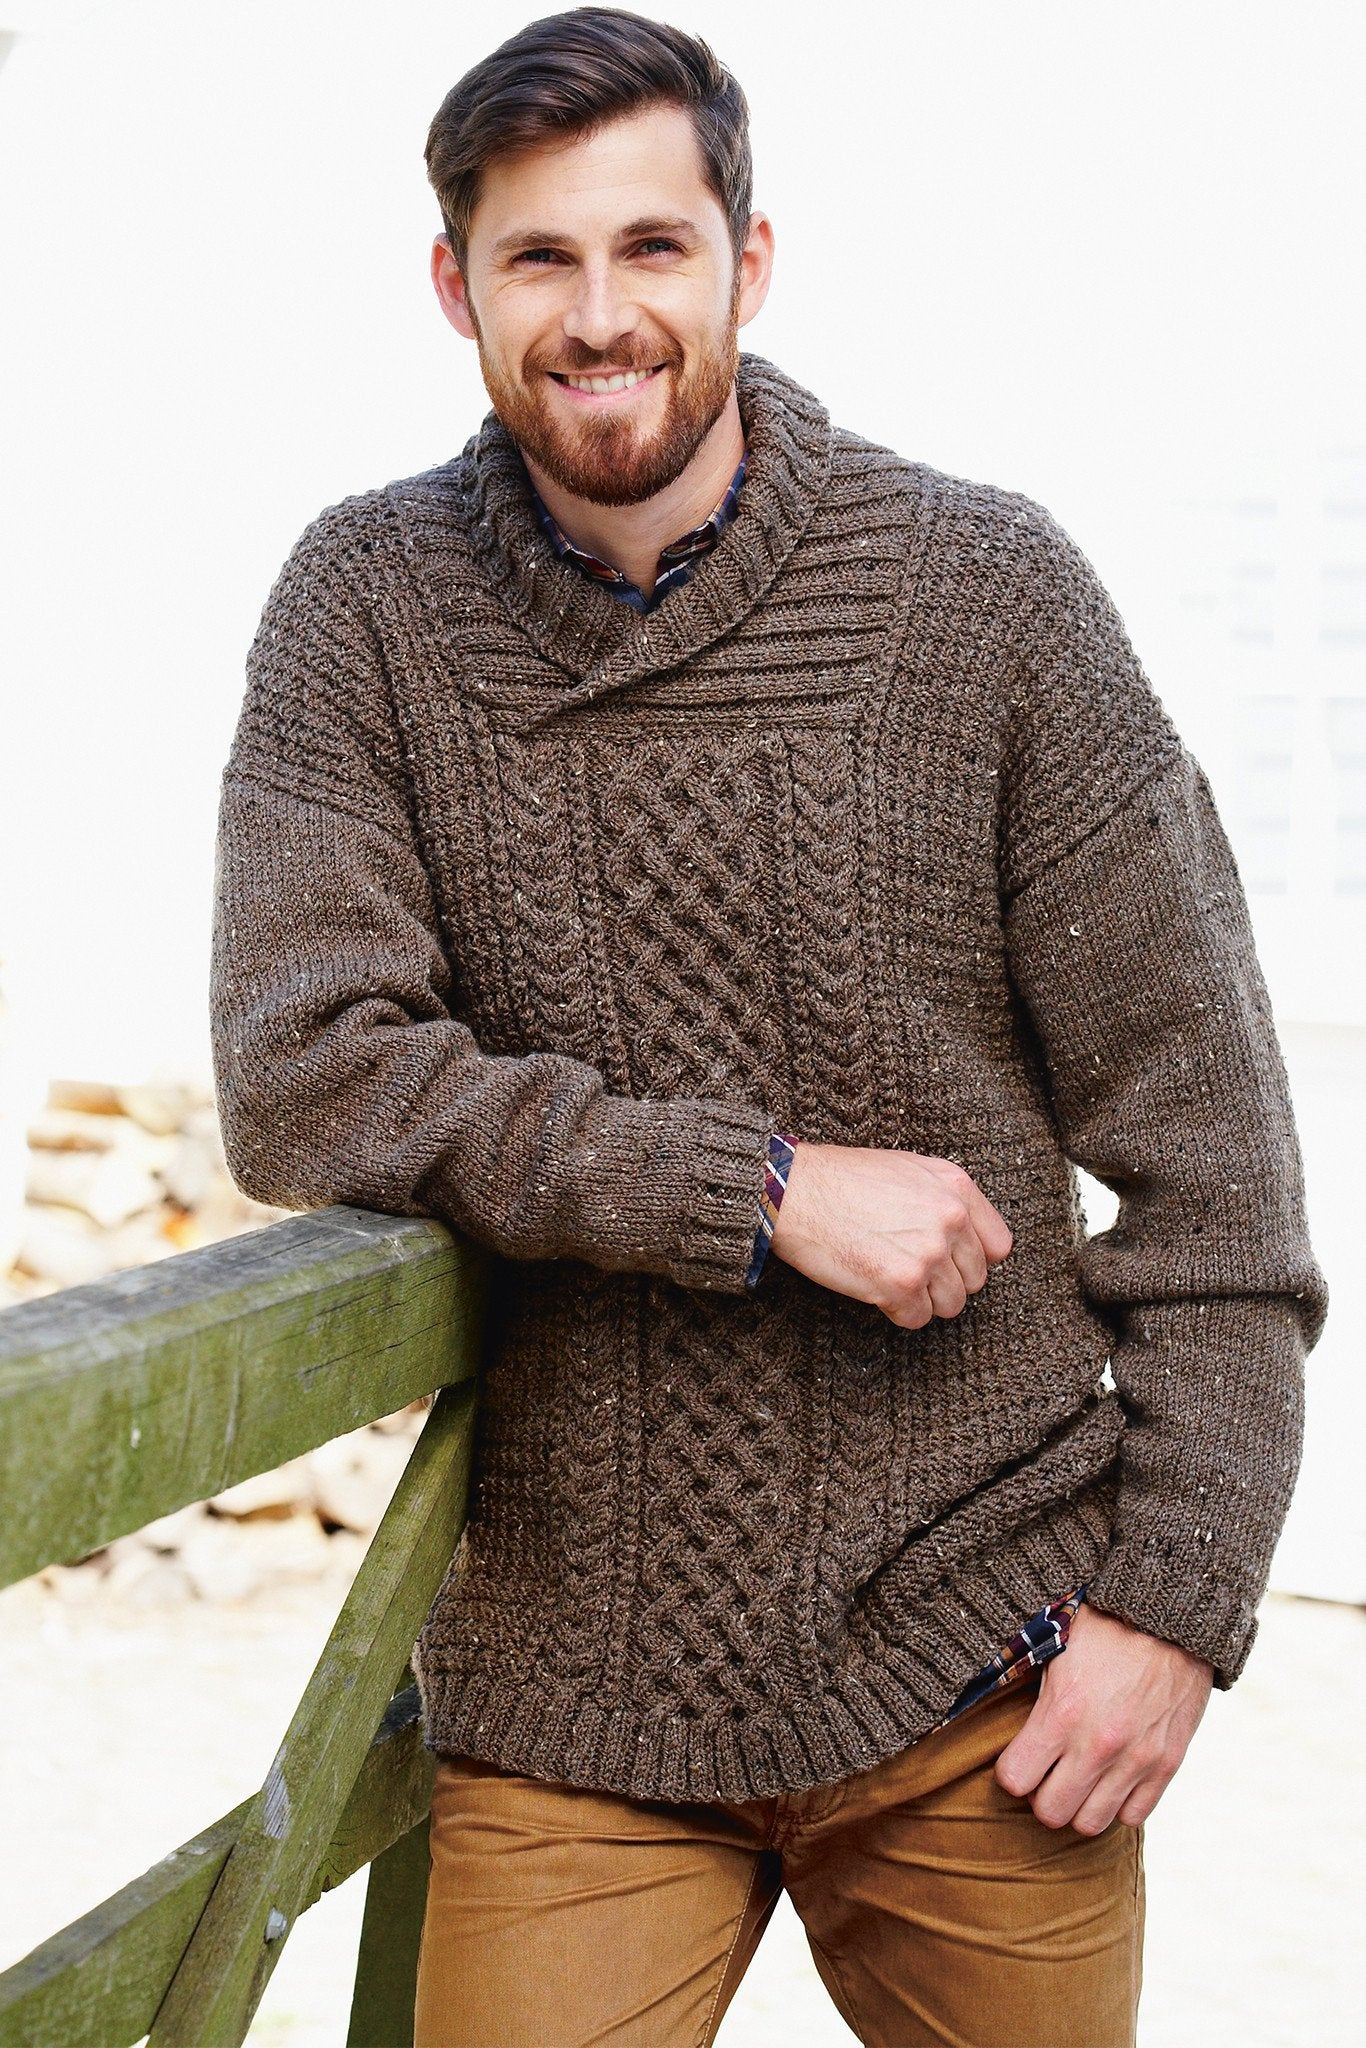 Mens Aran Sweater Knitting Pattern – The Knitting Network